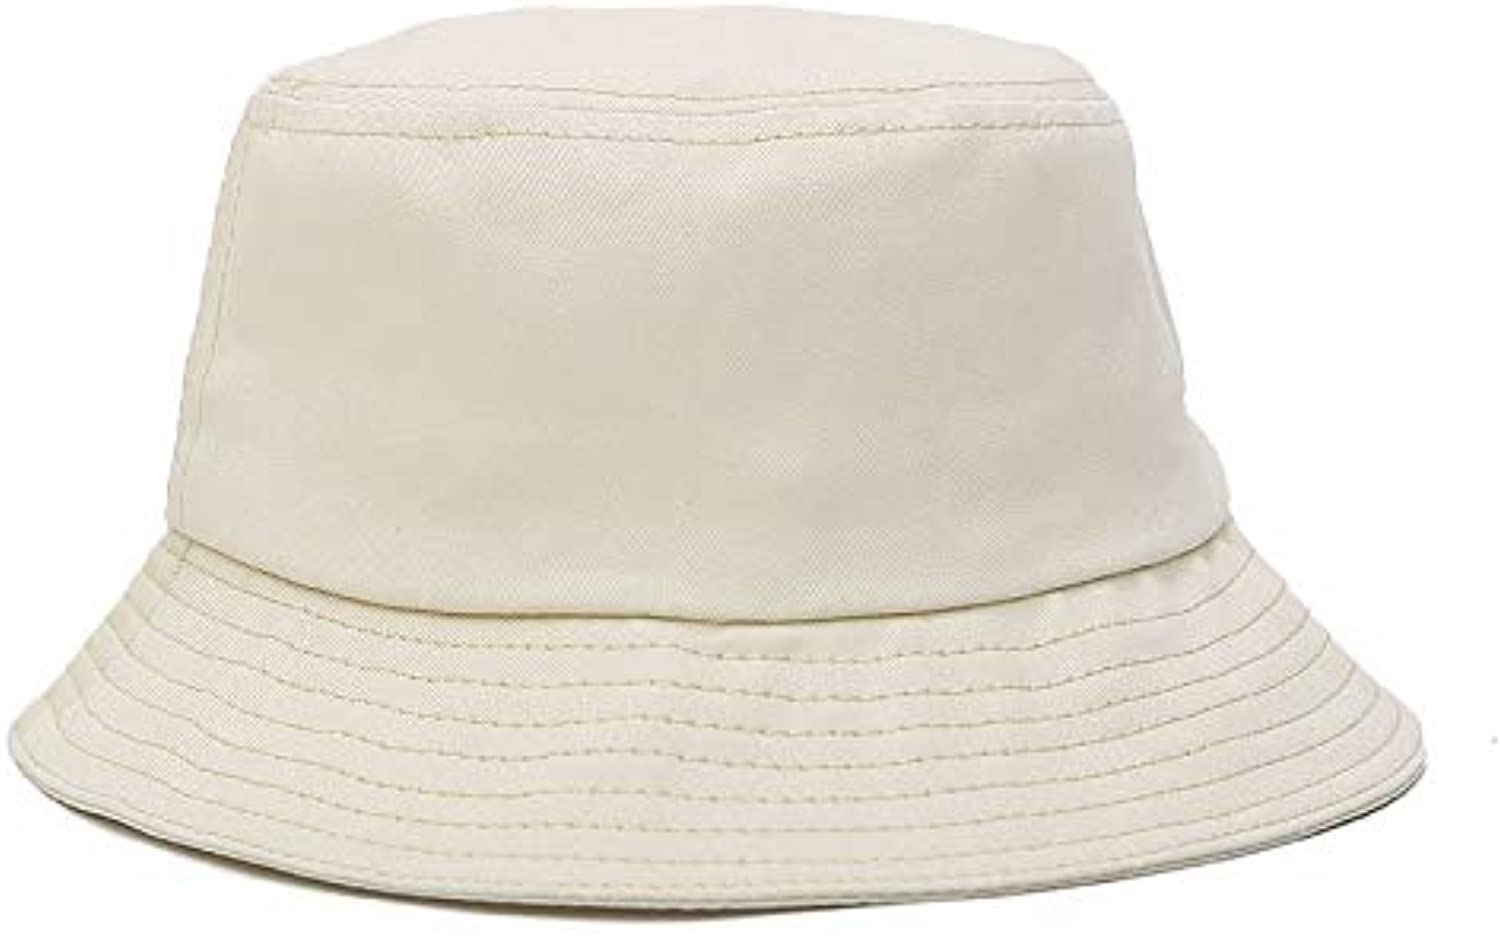 AAMOUSE Baseball Cap Solid Fashion Bucket Hats Summer Hat for Women Men Sun Casquette Cotton Flat Top Hat Fisherman Panama Hats